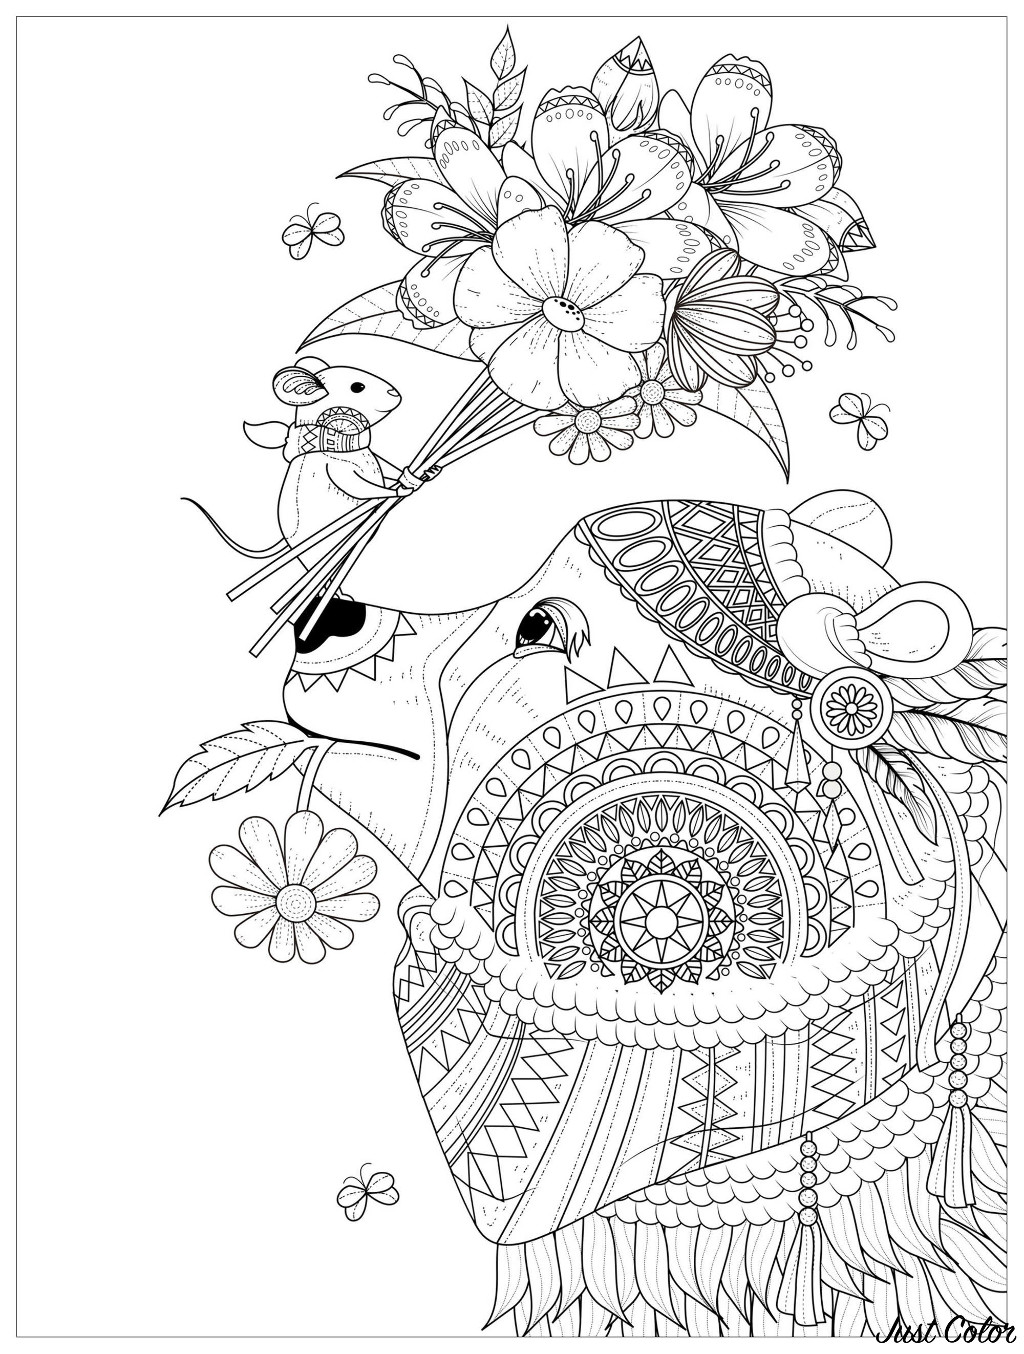 The Widow's Offering (Mark 12:41-44) coloring page | Free Printable Coloring  Pages | 1354x1024